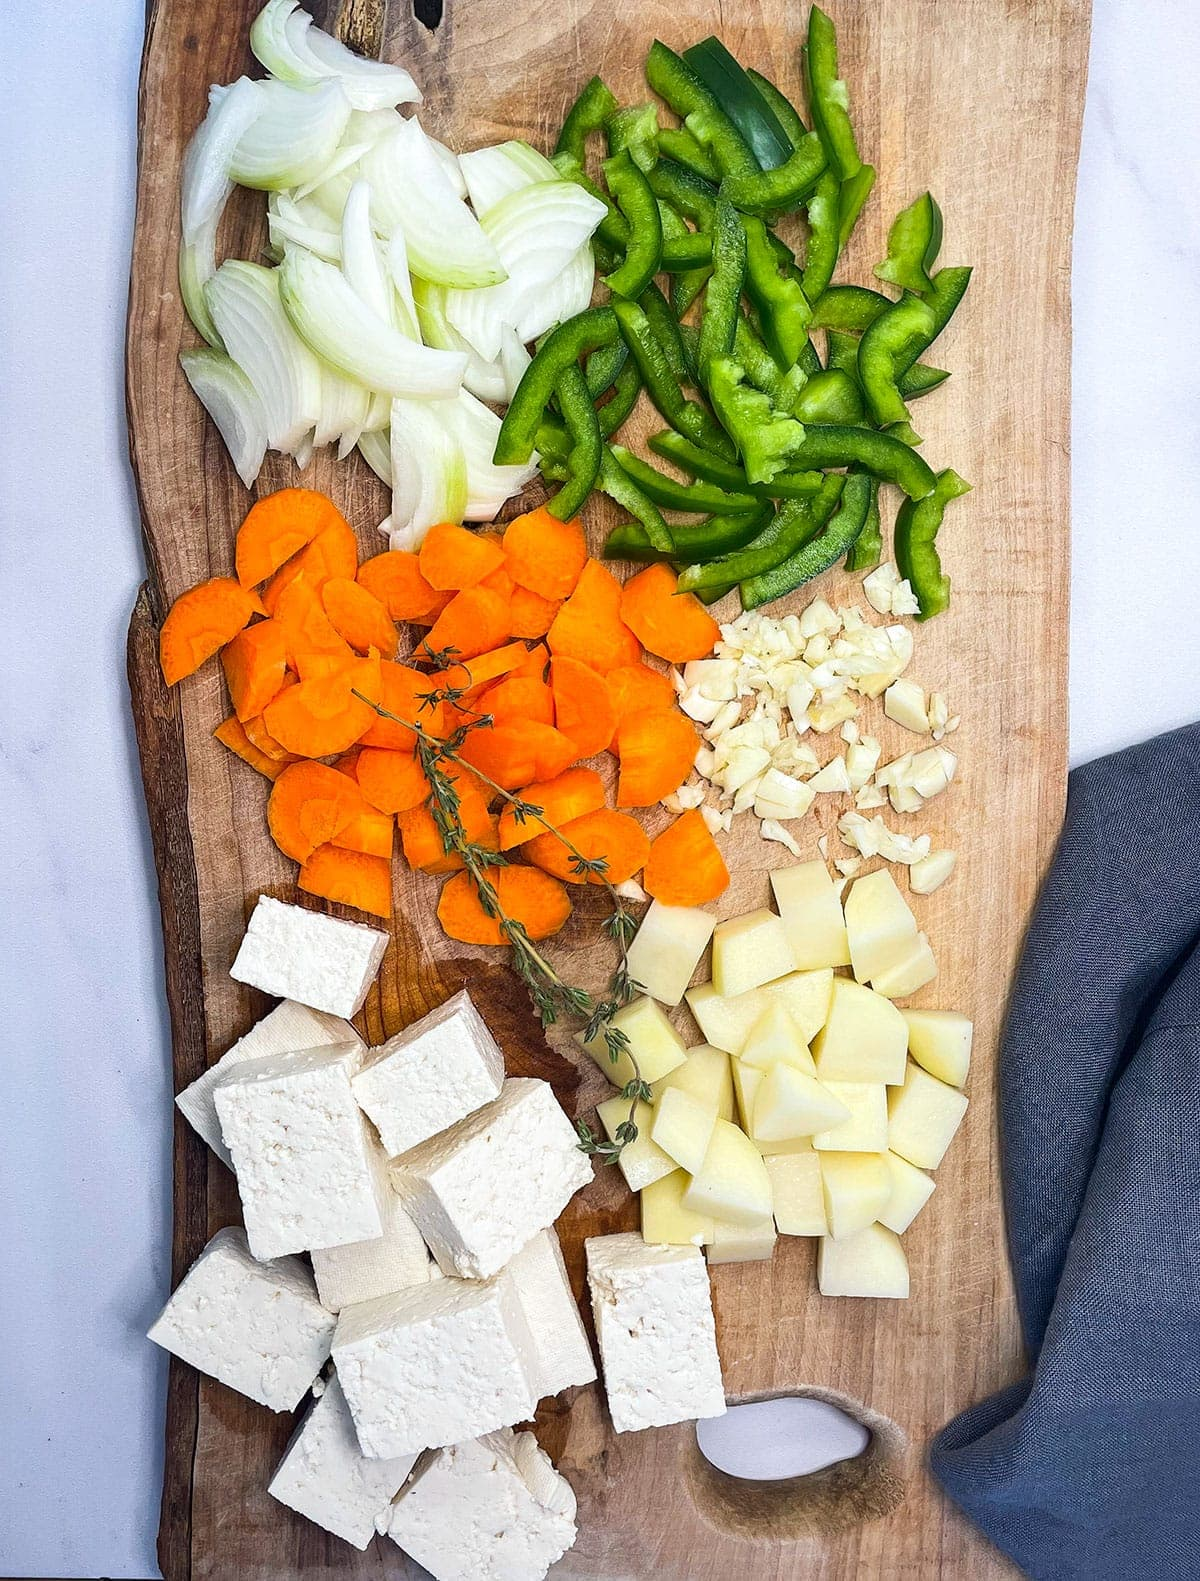 brown stew tofu ingredients chopped on cutting board